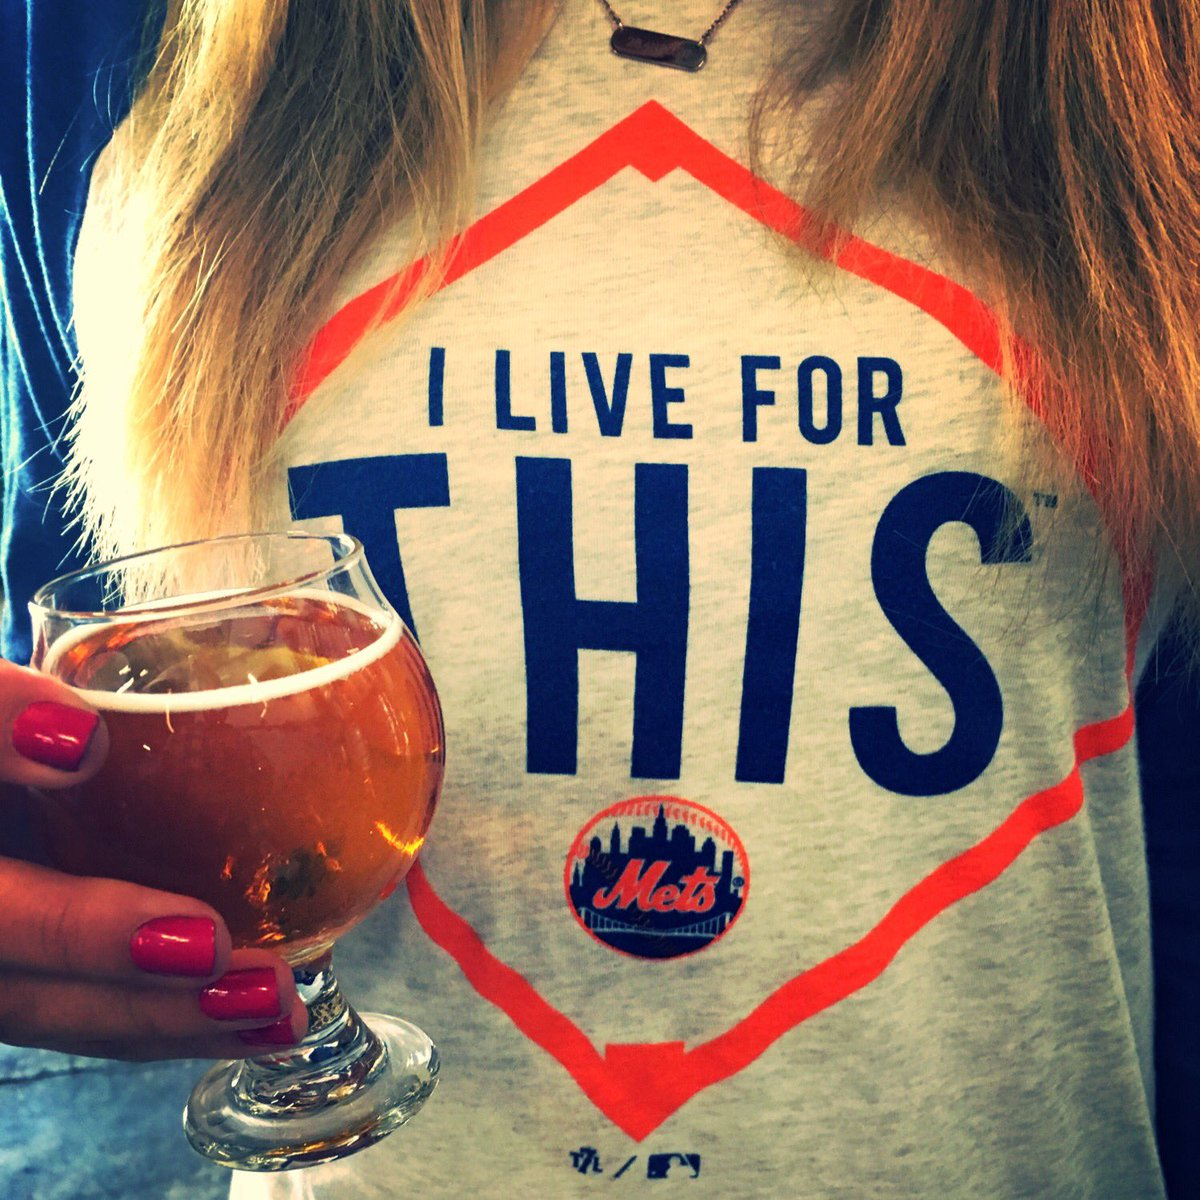 Perfect Saturday @The7Line @kanebrewing #ILiveForThis #LGM https://t.co/A5UwUnx3fy